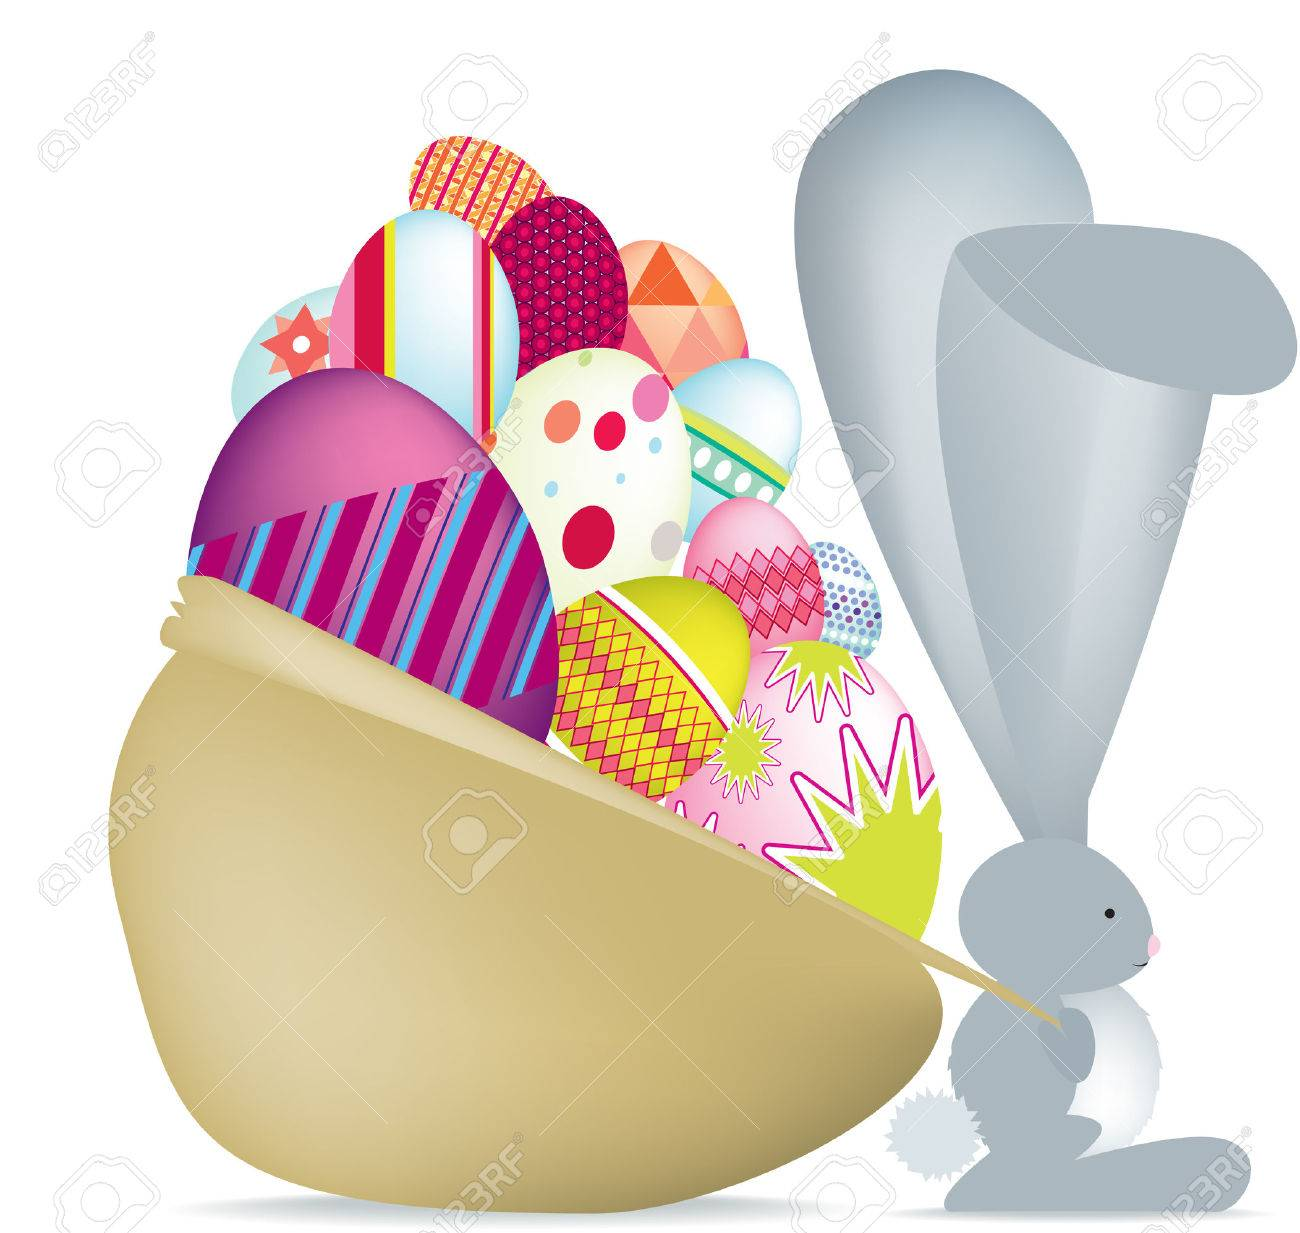 Easter bunny with eggs Detailed vector file, fully editable and scaleable to any size. Stock Vector - 4334232